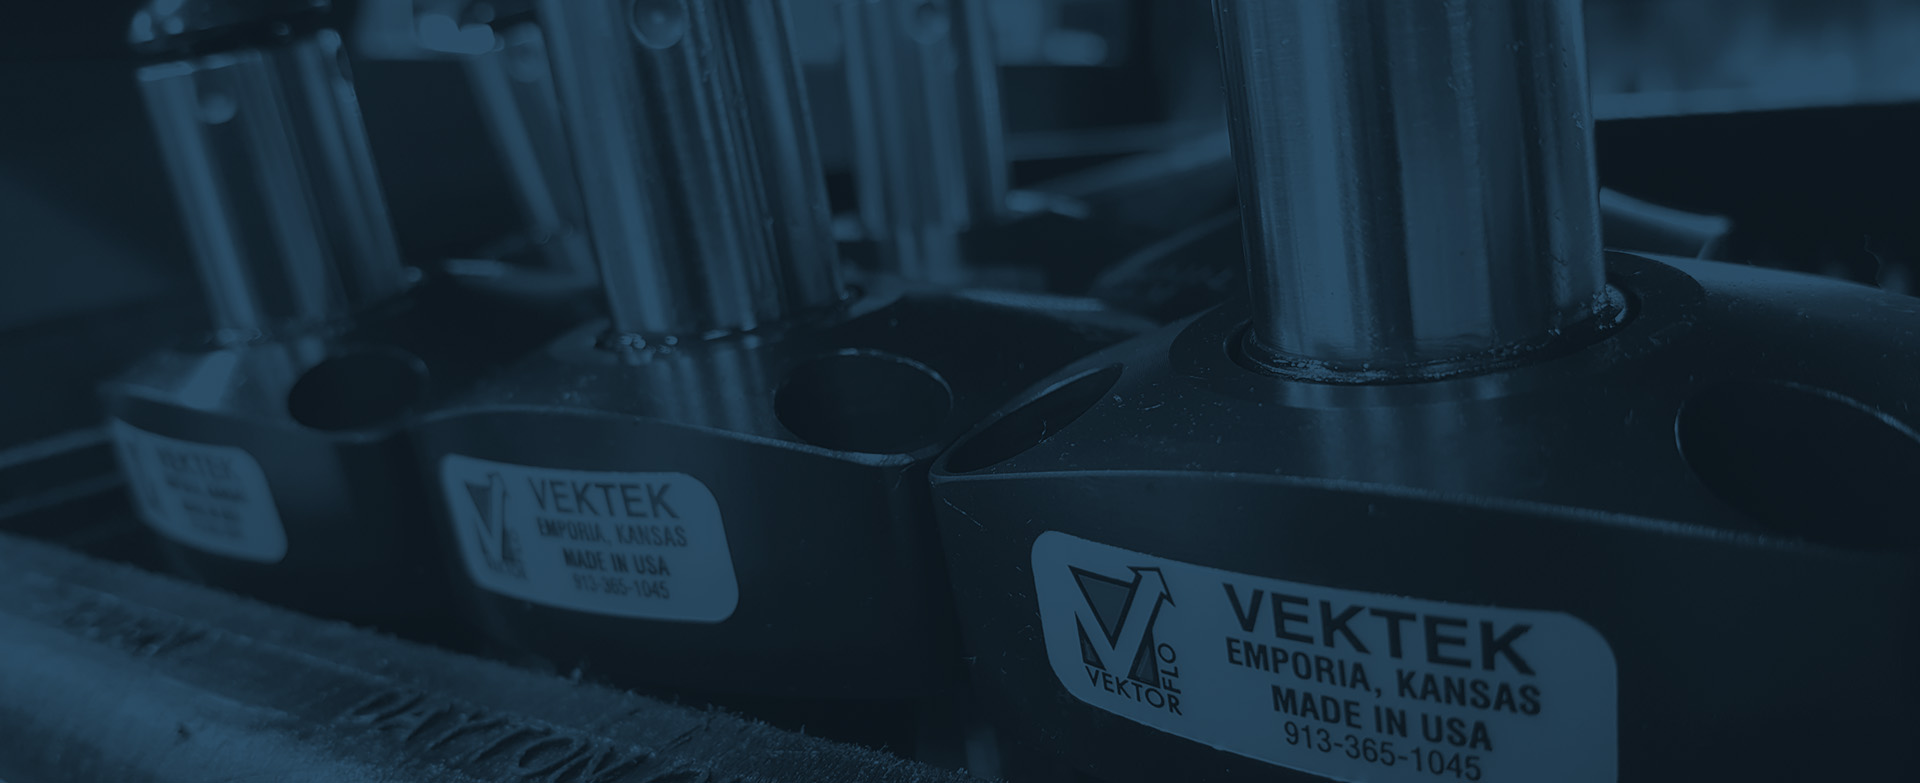 Vektek Hydraulic Clamping Products in use